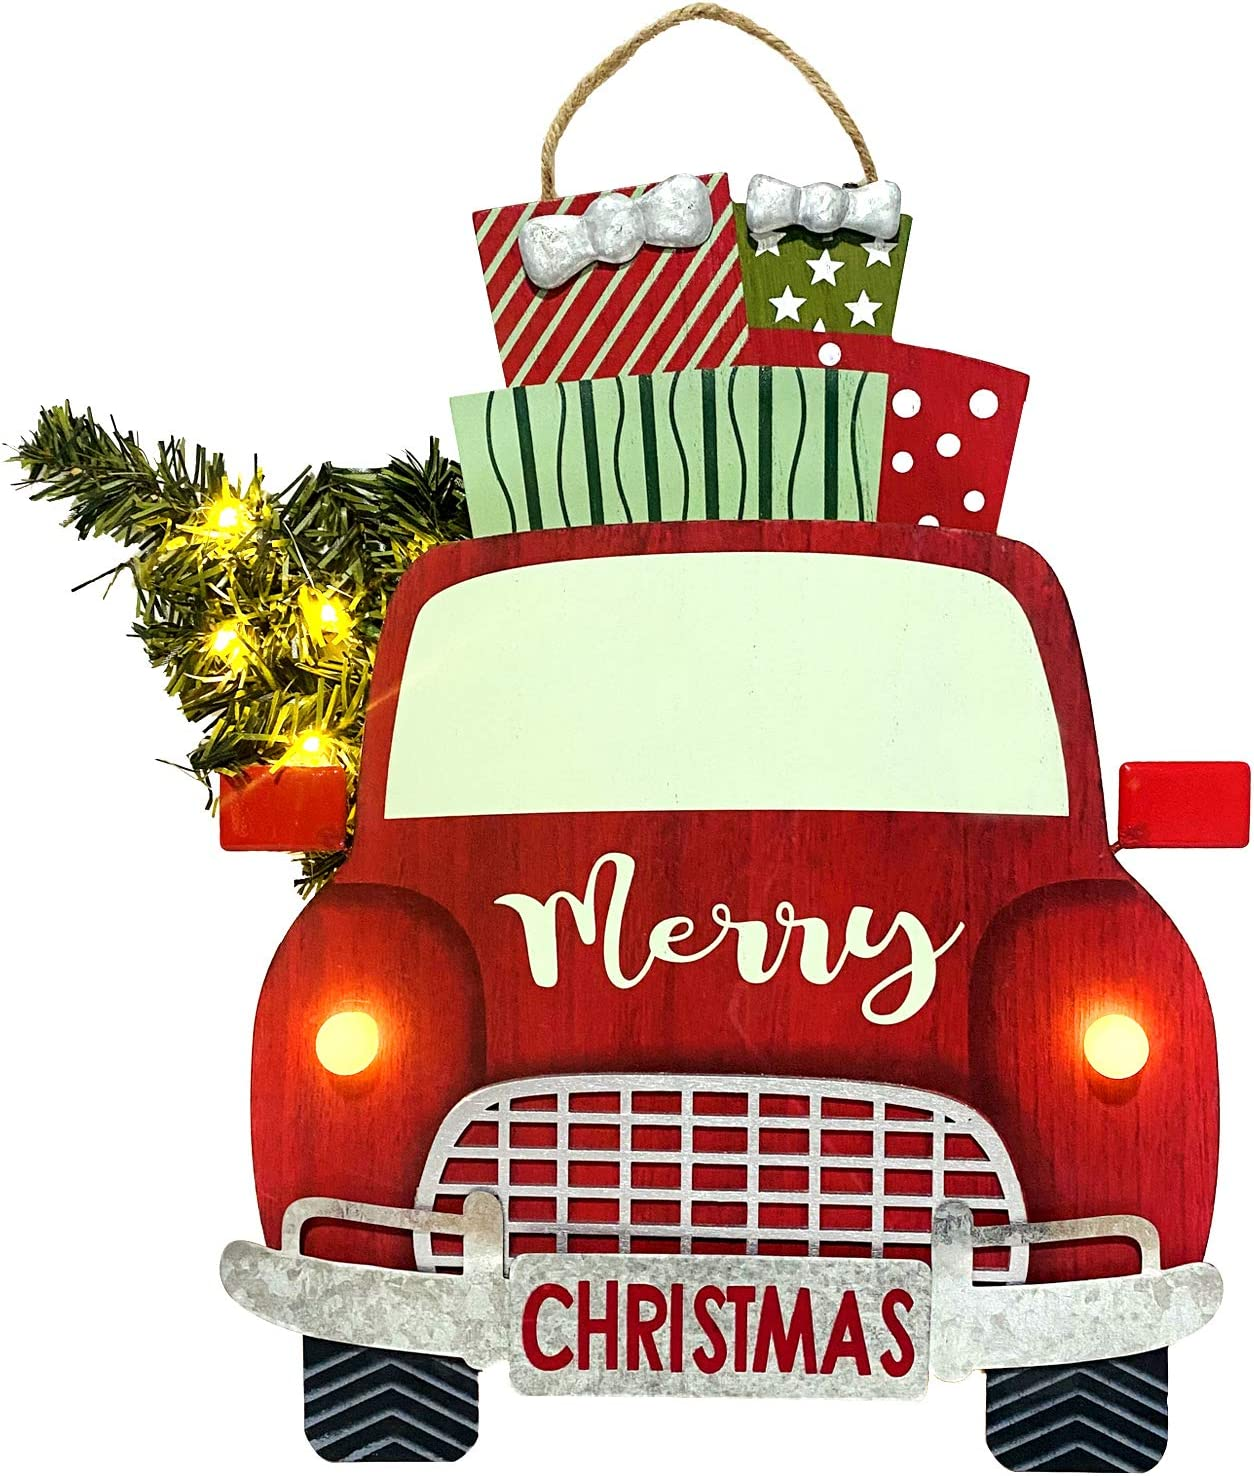 HOMirable Christmas Red Truck Sign with Christmas Trees, Merry Christmas LED Lighted Decor, Home Holiday Farmhouse Ornament, Vintage Rustic Wood Wall Hanging Door Decorations Yard Wall Art Plaque Gift